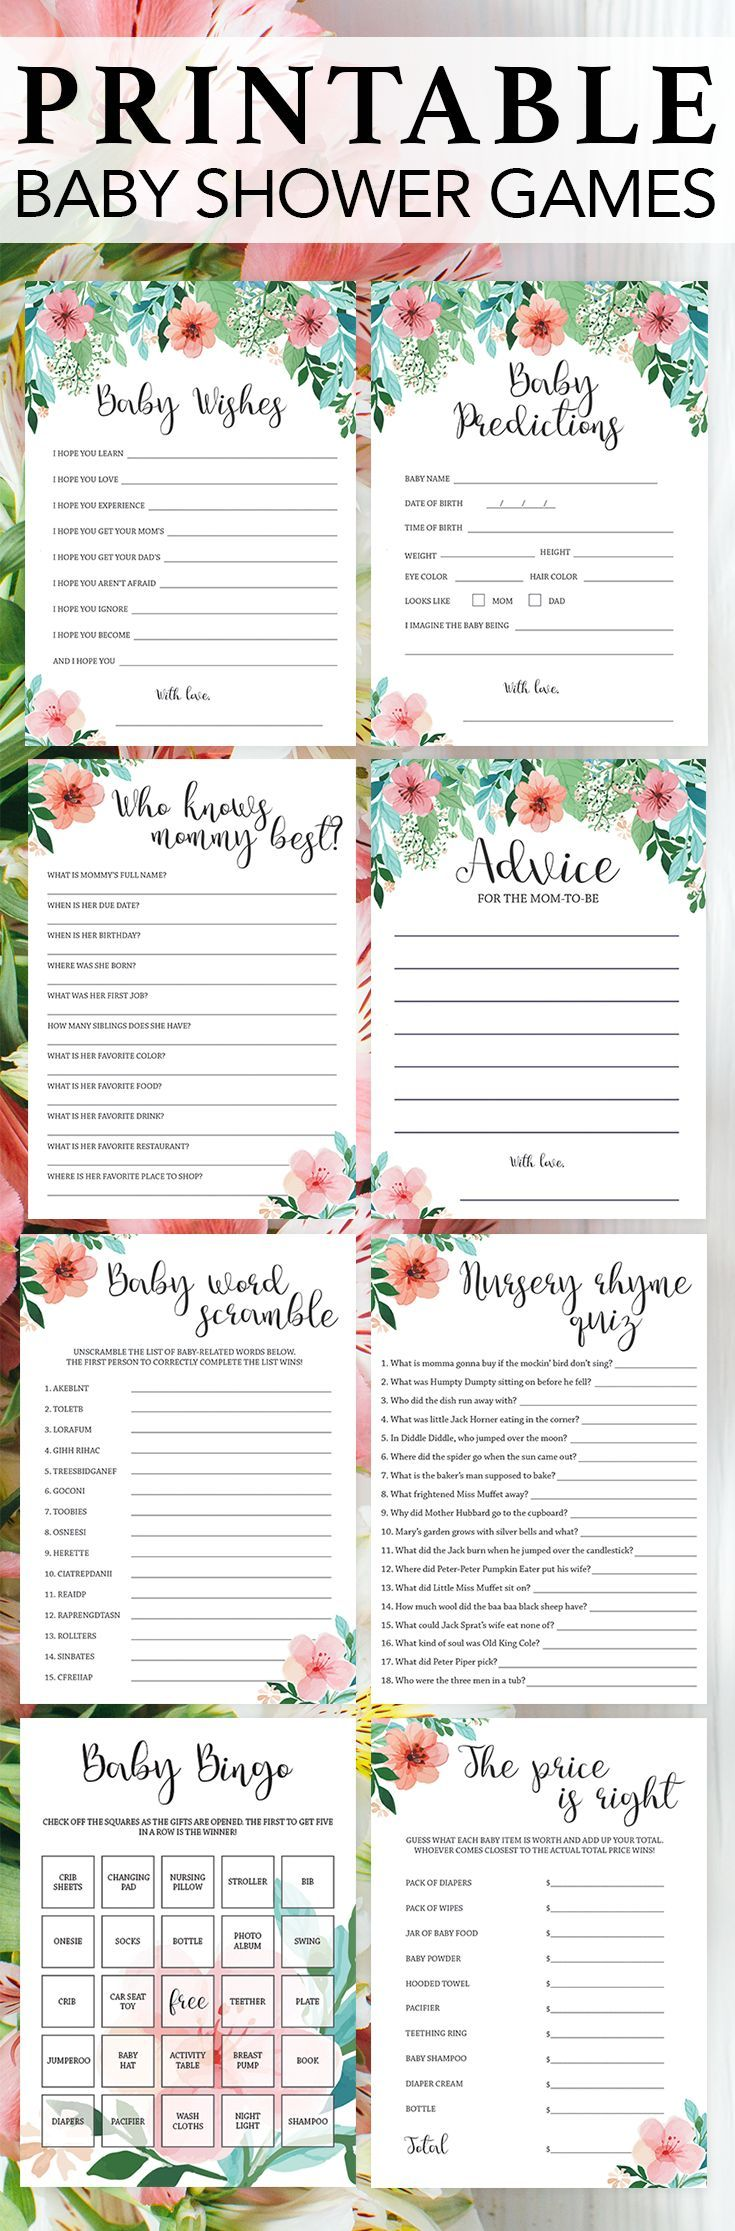 Printable baby shower games by LittleSizzle. Click through to instantly download your unique floral baby shower games or re-pin for later! Floral themed baby shower ideas. Popular floral baby shower games to entertain large groups. Printable floral games for baby shower. It's a girl baby shower games to print at home. #babyshowergames #babyshowerideas #printable #printablegames #DIY #instantdownload #gamespack #floralshower